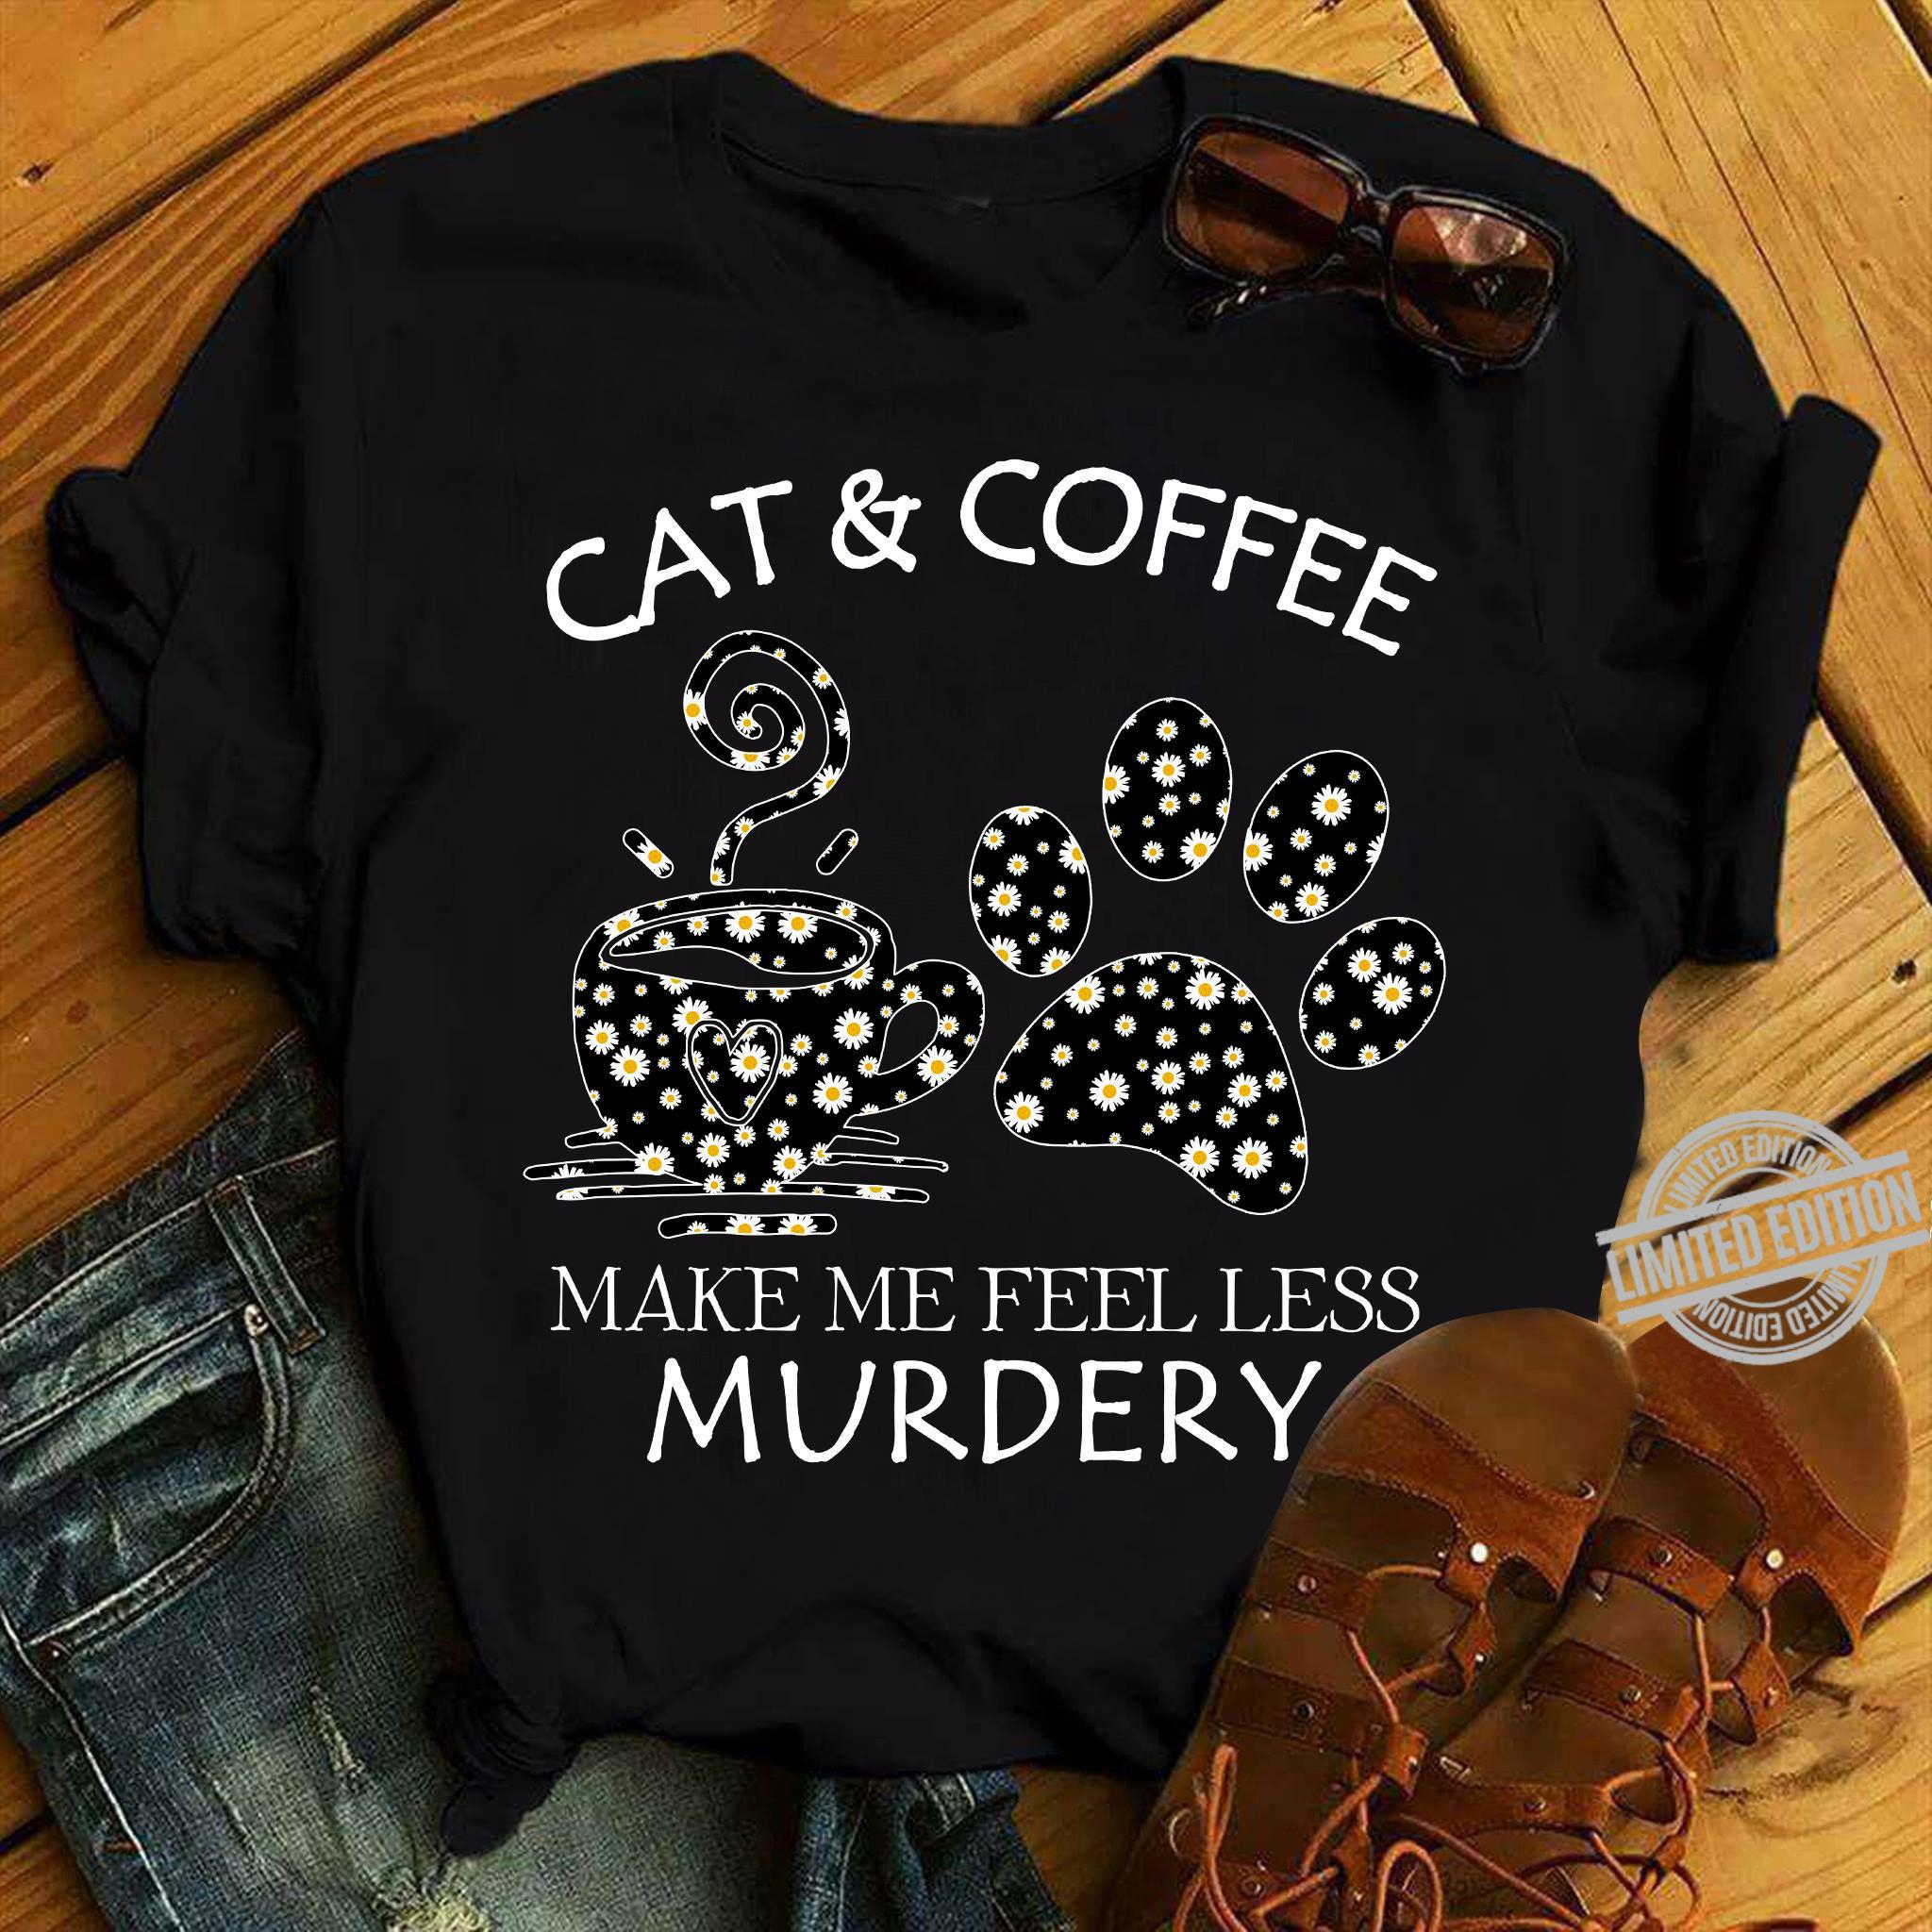 Cat & Coffee Make Me Feel Less Murdery Shirt